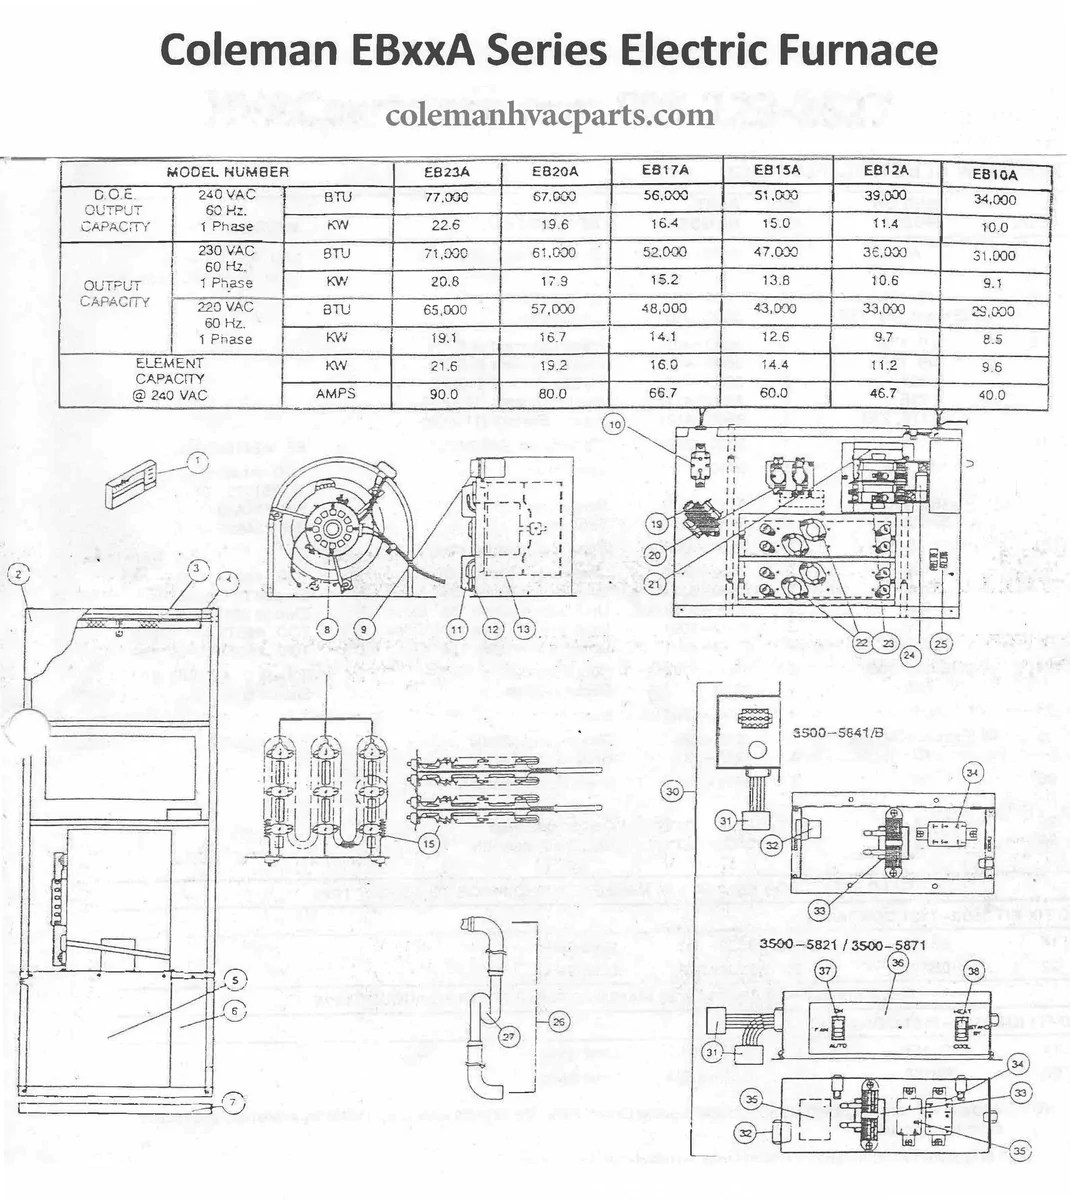 Kw Trailer Wiring Diagram Eb15a Coleman Electric Furnace Parts Hvacpartstore